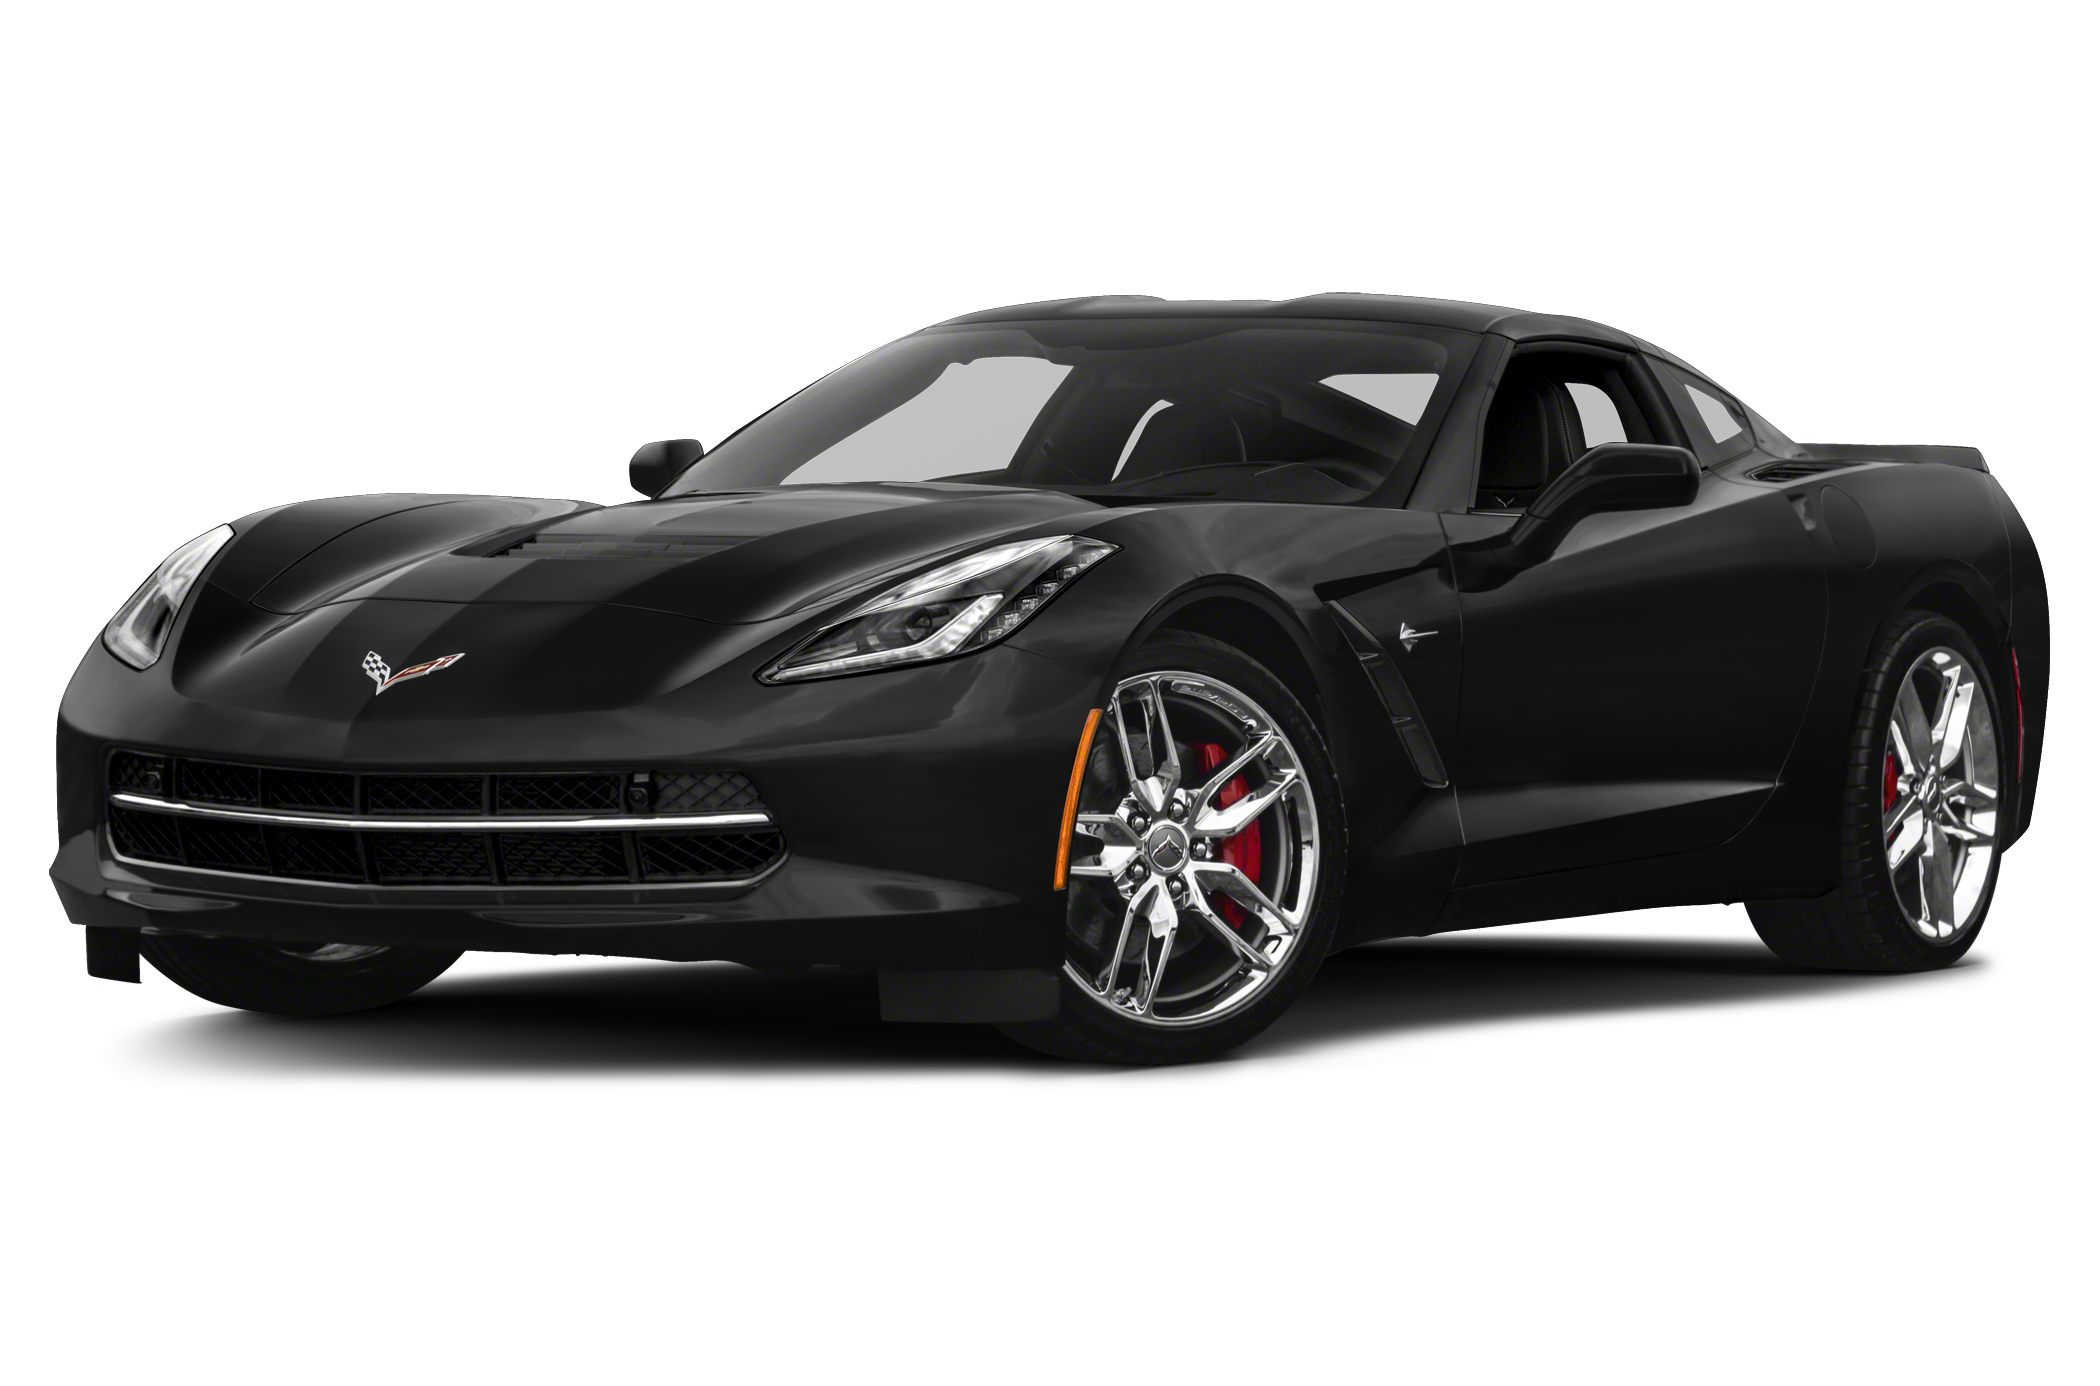 2018 Chevrolet Corvette Stingray Z51 2dr Coupe